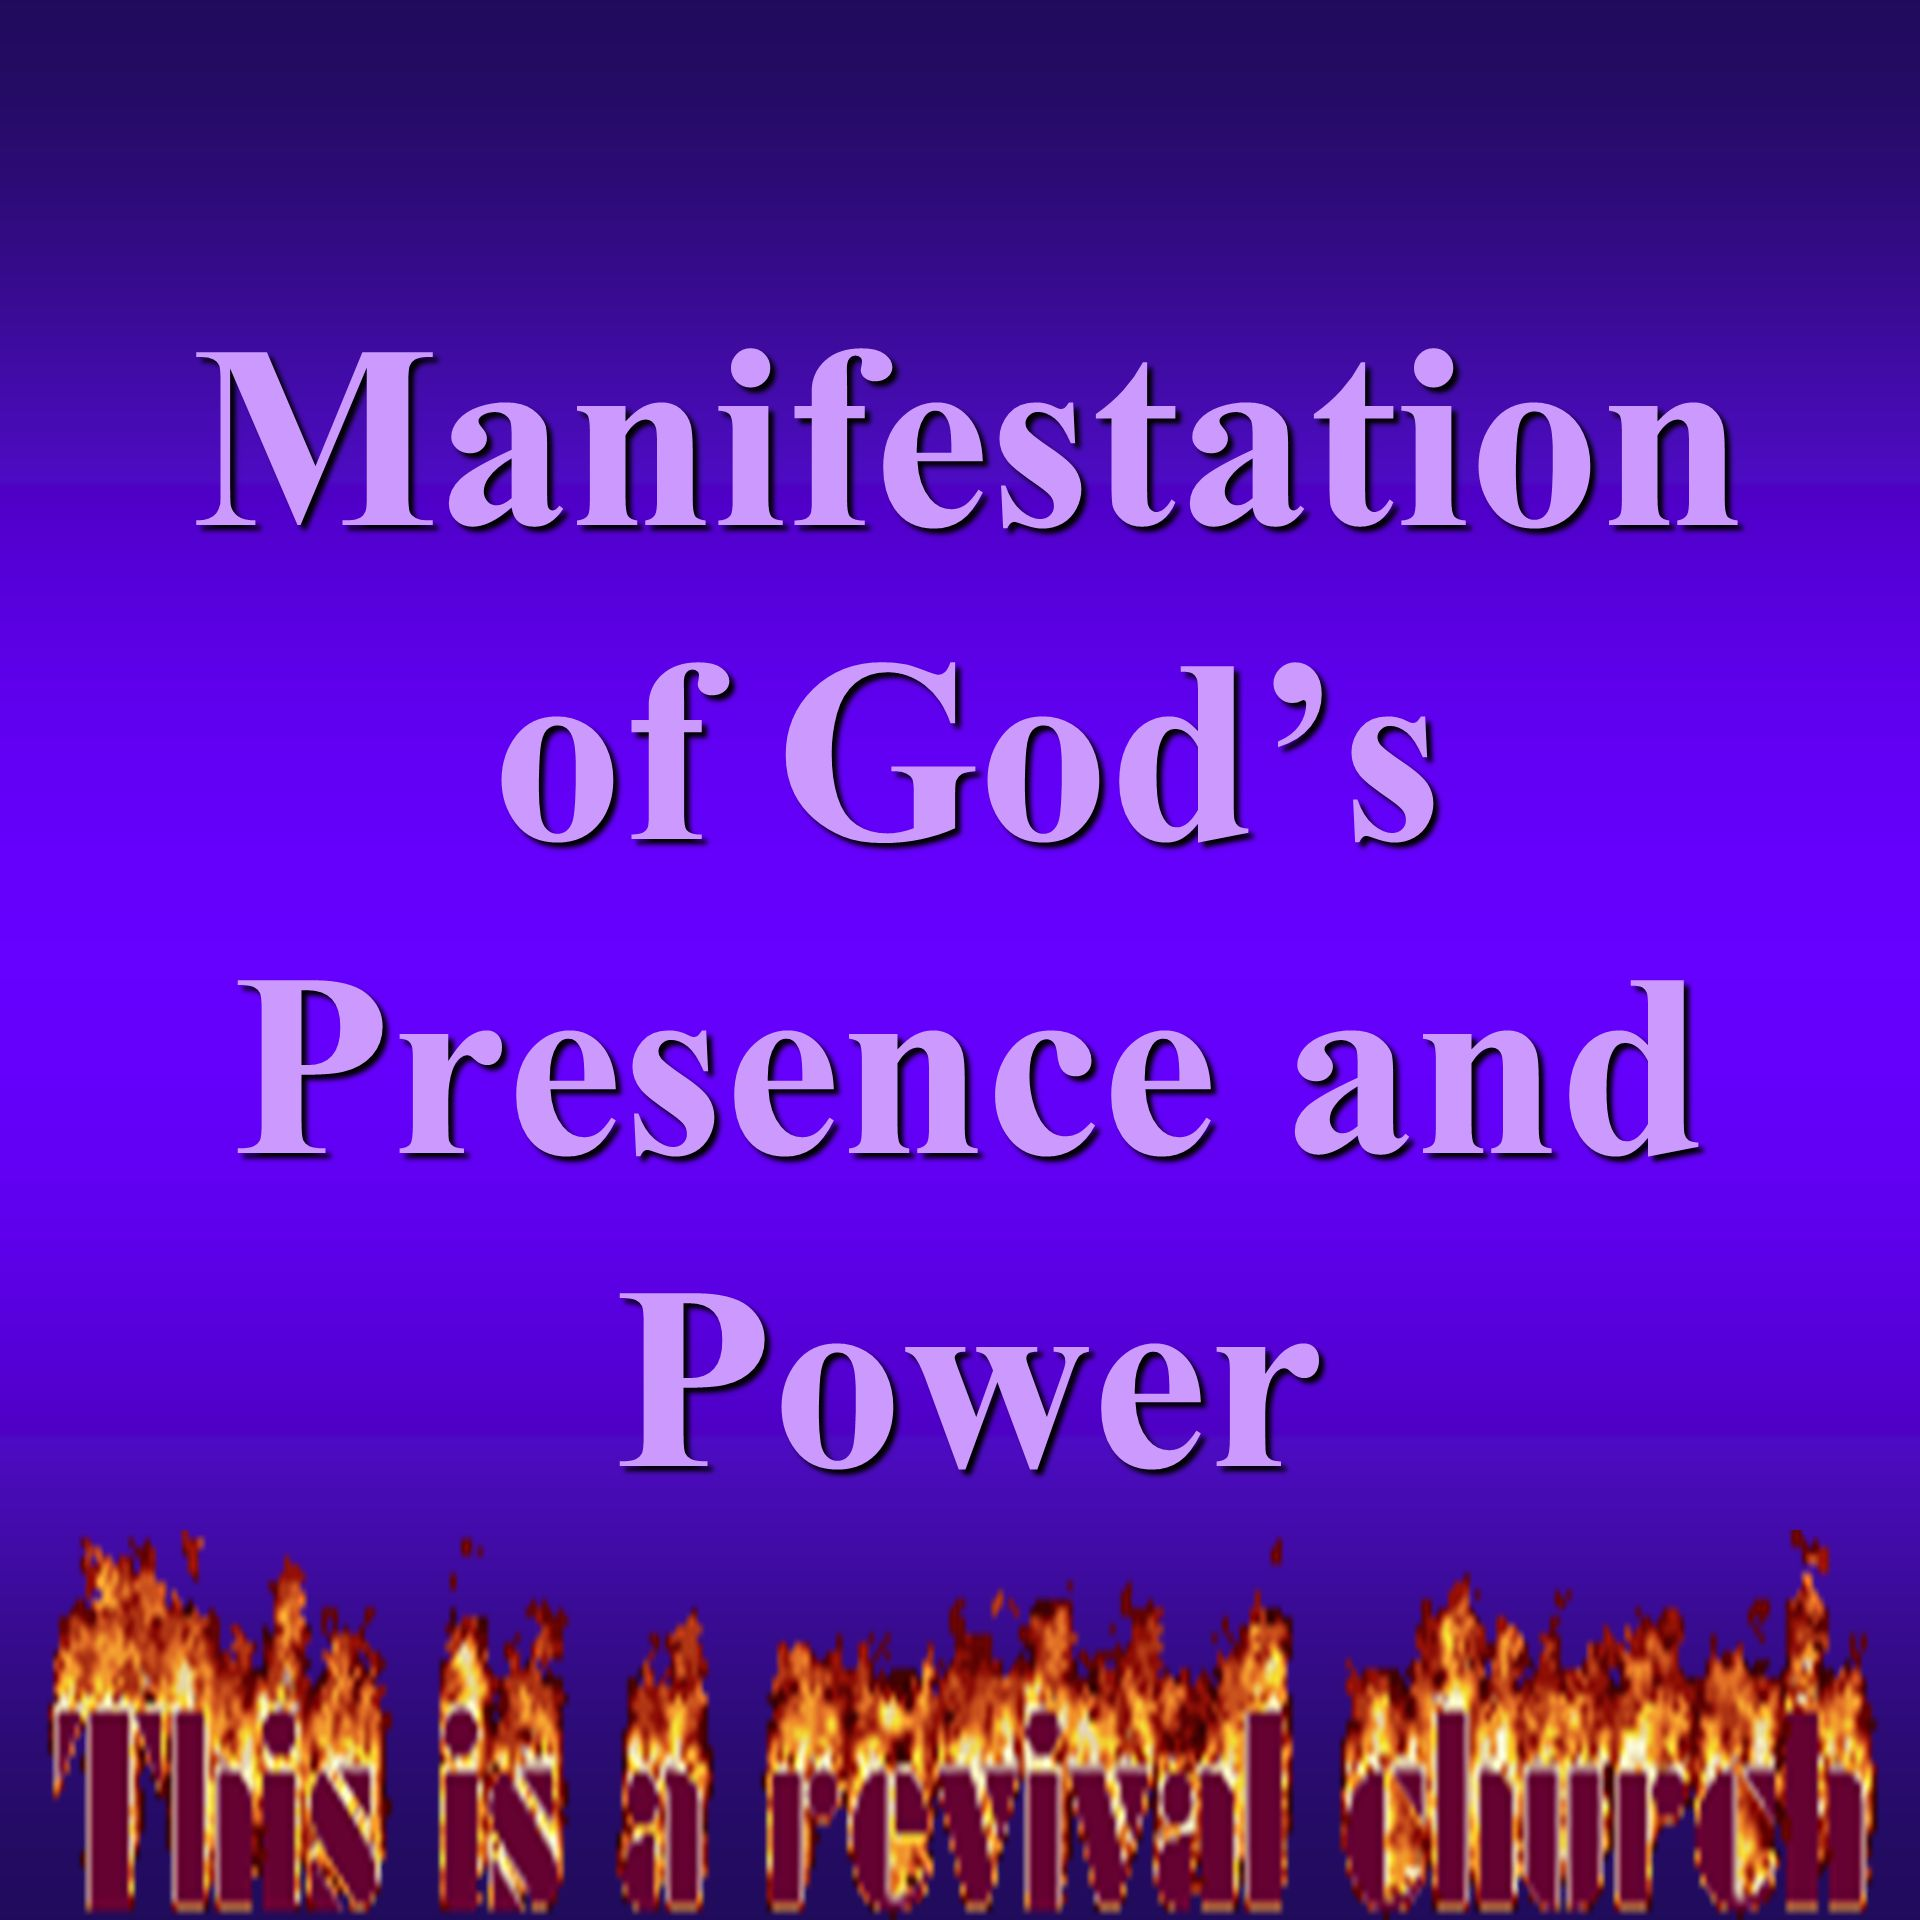 Manifestation of God's Presence and Power